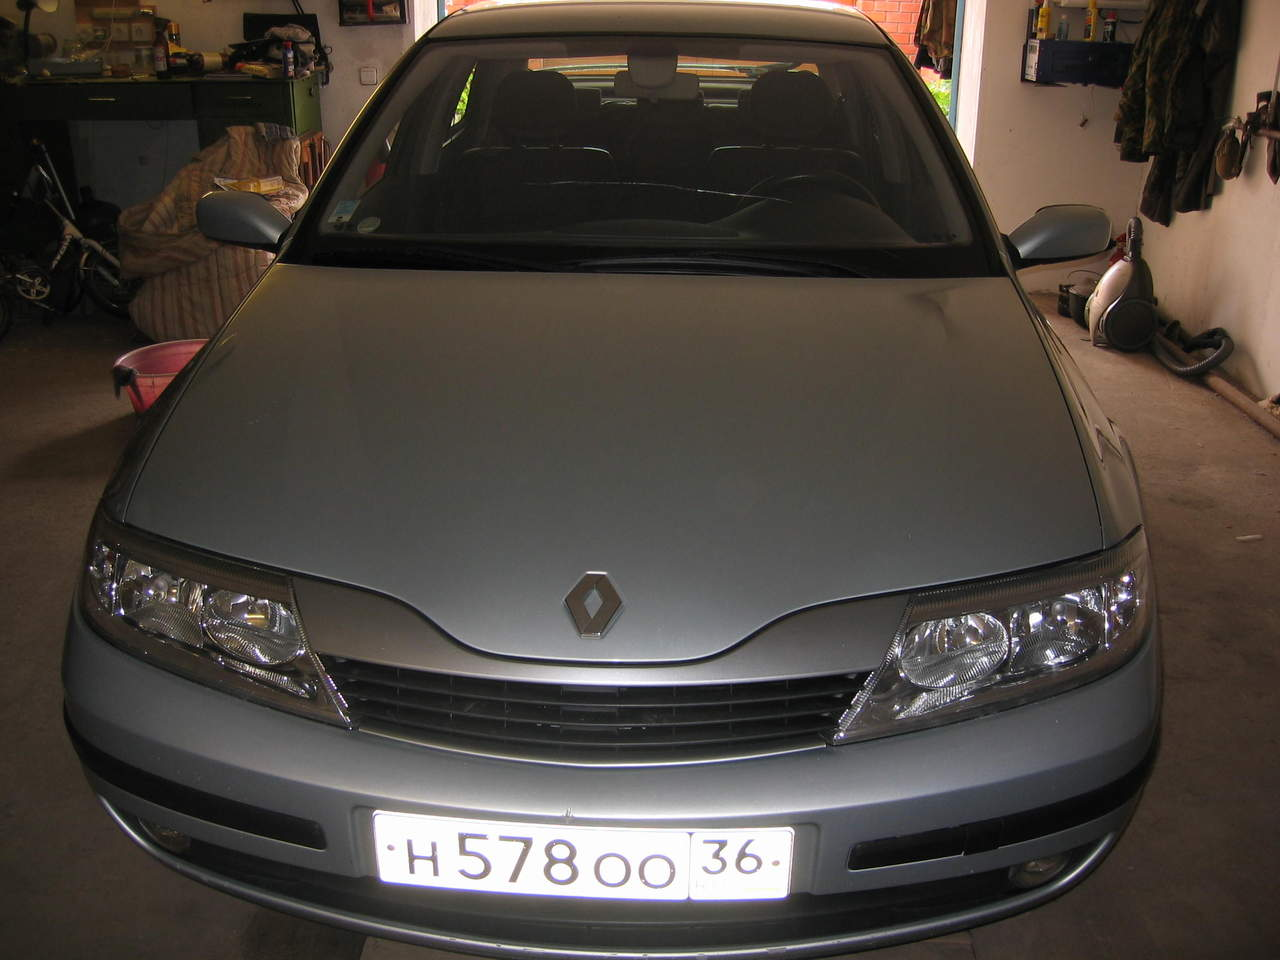 2001 renault laguna pics 1 8 gasoline ff manual for sale. Black Bedroom Furniture Sets. Home Design Ideas